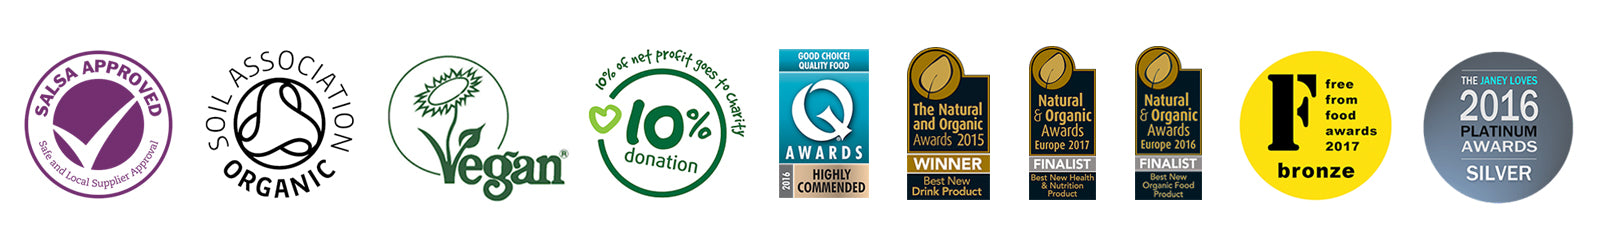 BodyMe Vegan Nutrition Quality And Award Badges Banner